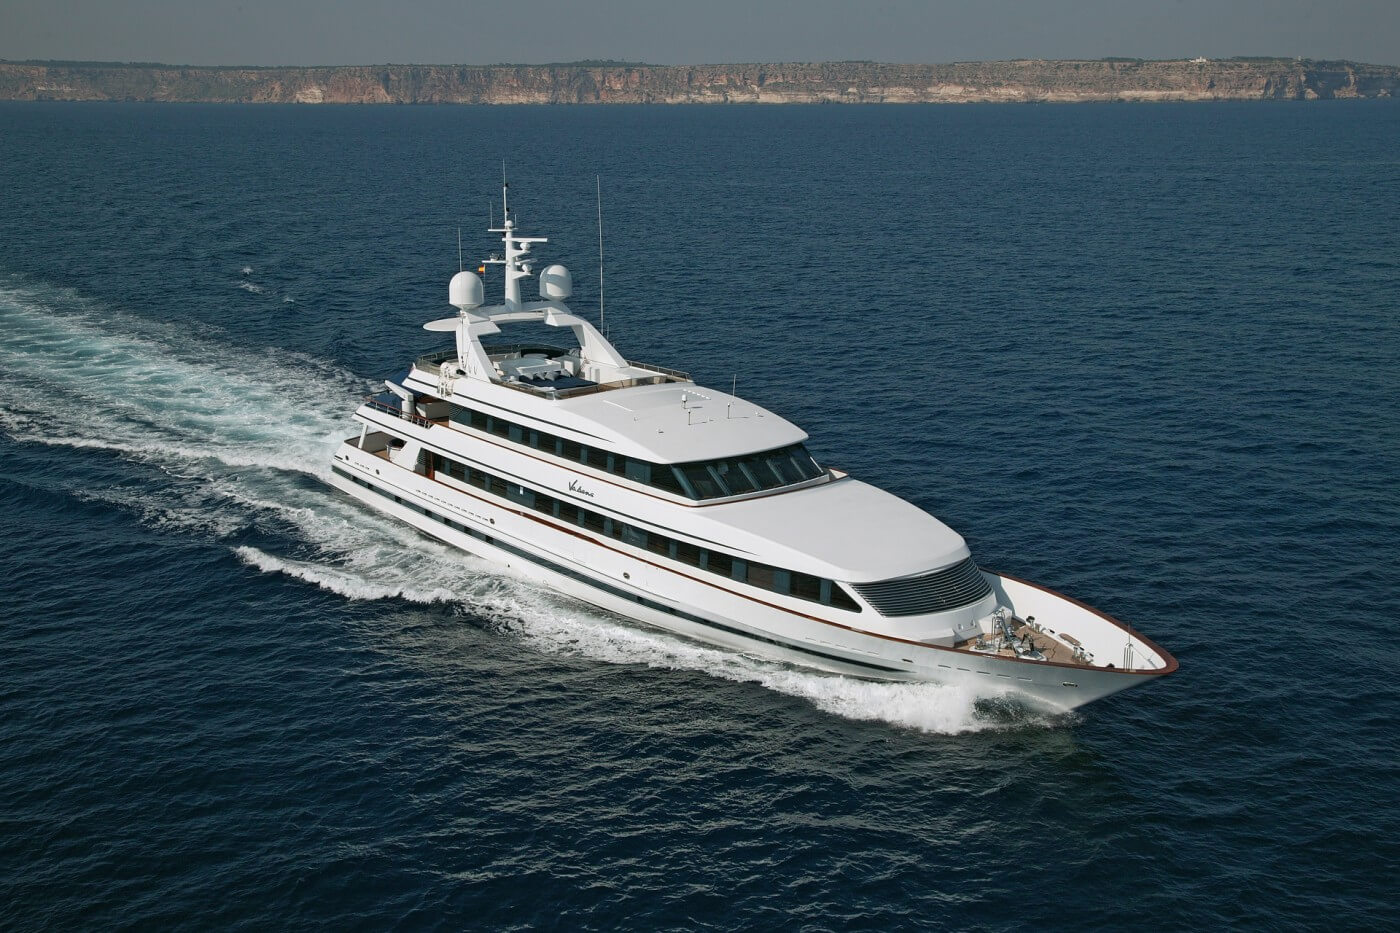 10 Nicest Celebrity Yachts and The Owners - EALUXE.COM